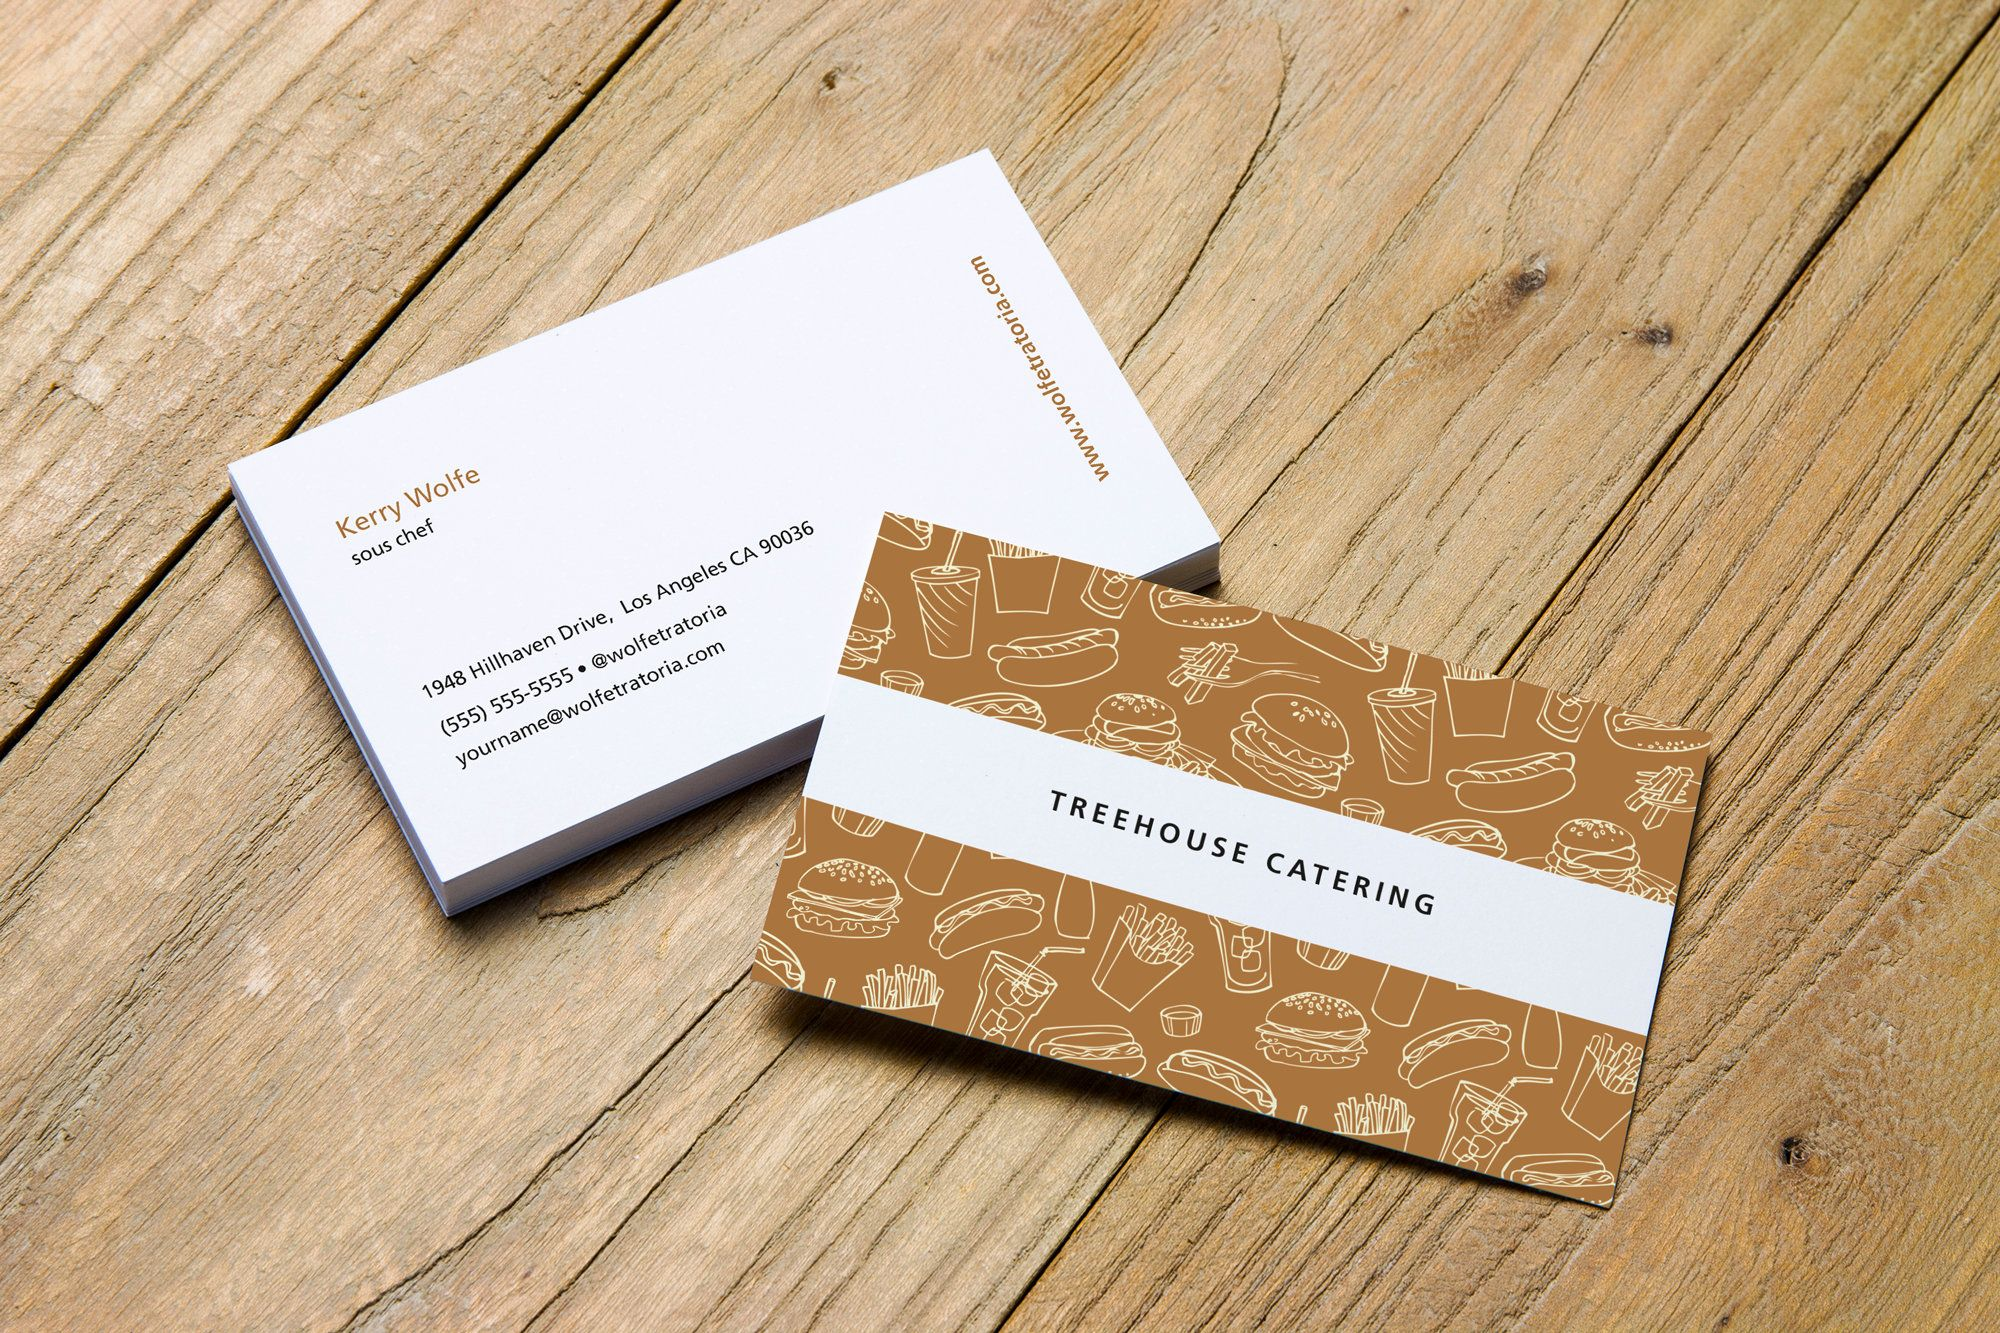 Catering Business Card Bakery Business Card Business Card Etsy Bakery Business Cards Catering Business Cards Business Card Design